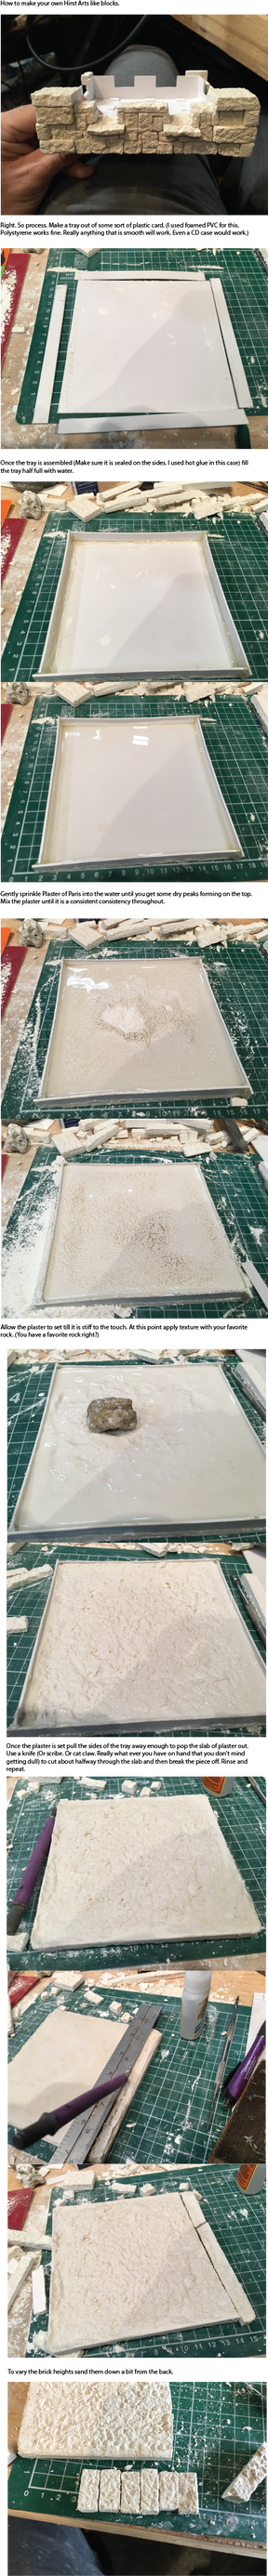 Tutorial on making Plaster of Paris Blocks